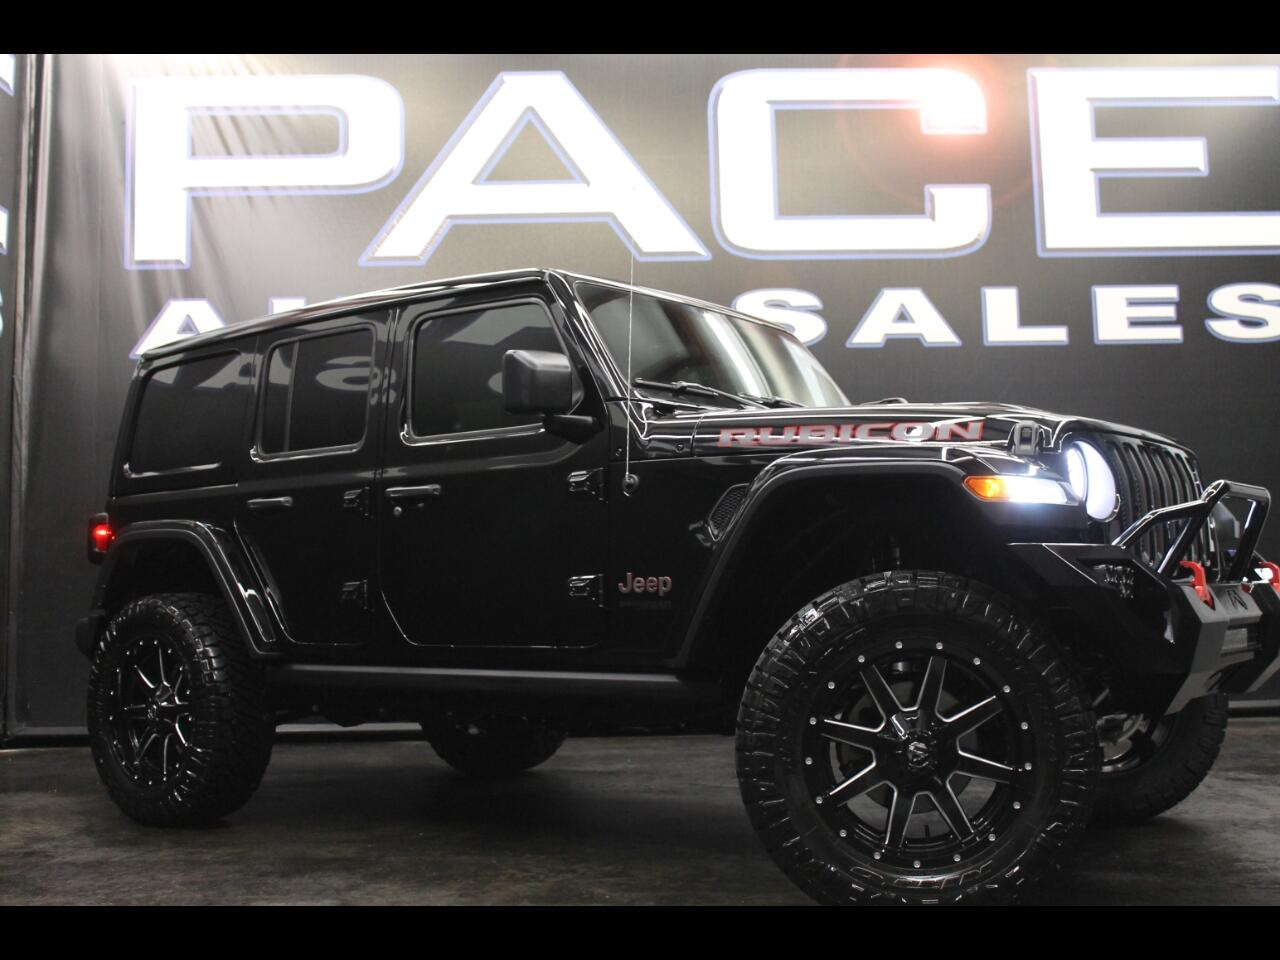 2018 Jeep Wrangler Unlimited Rubicon 4x4 Custom Lifted